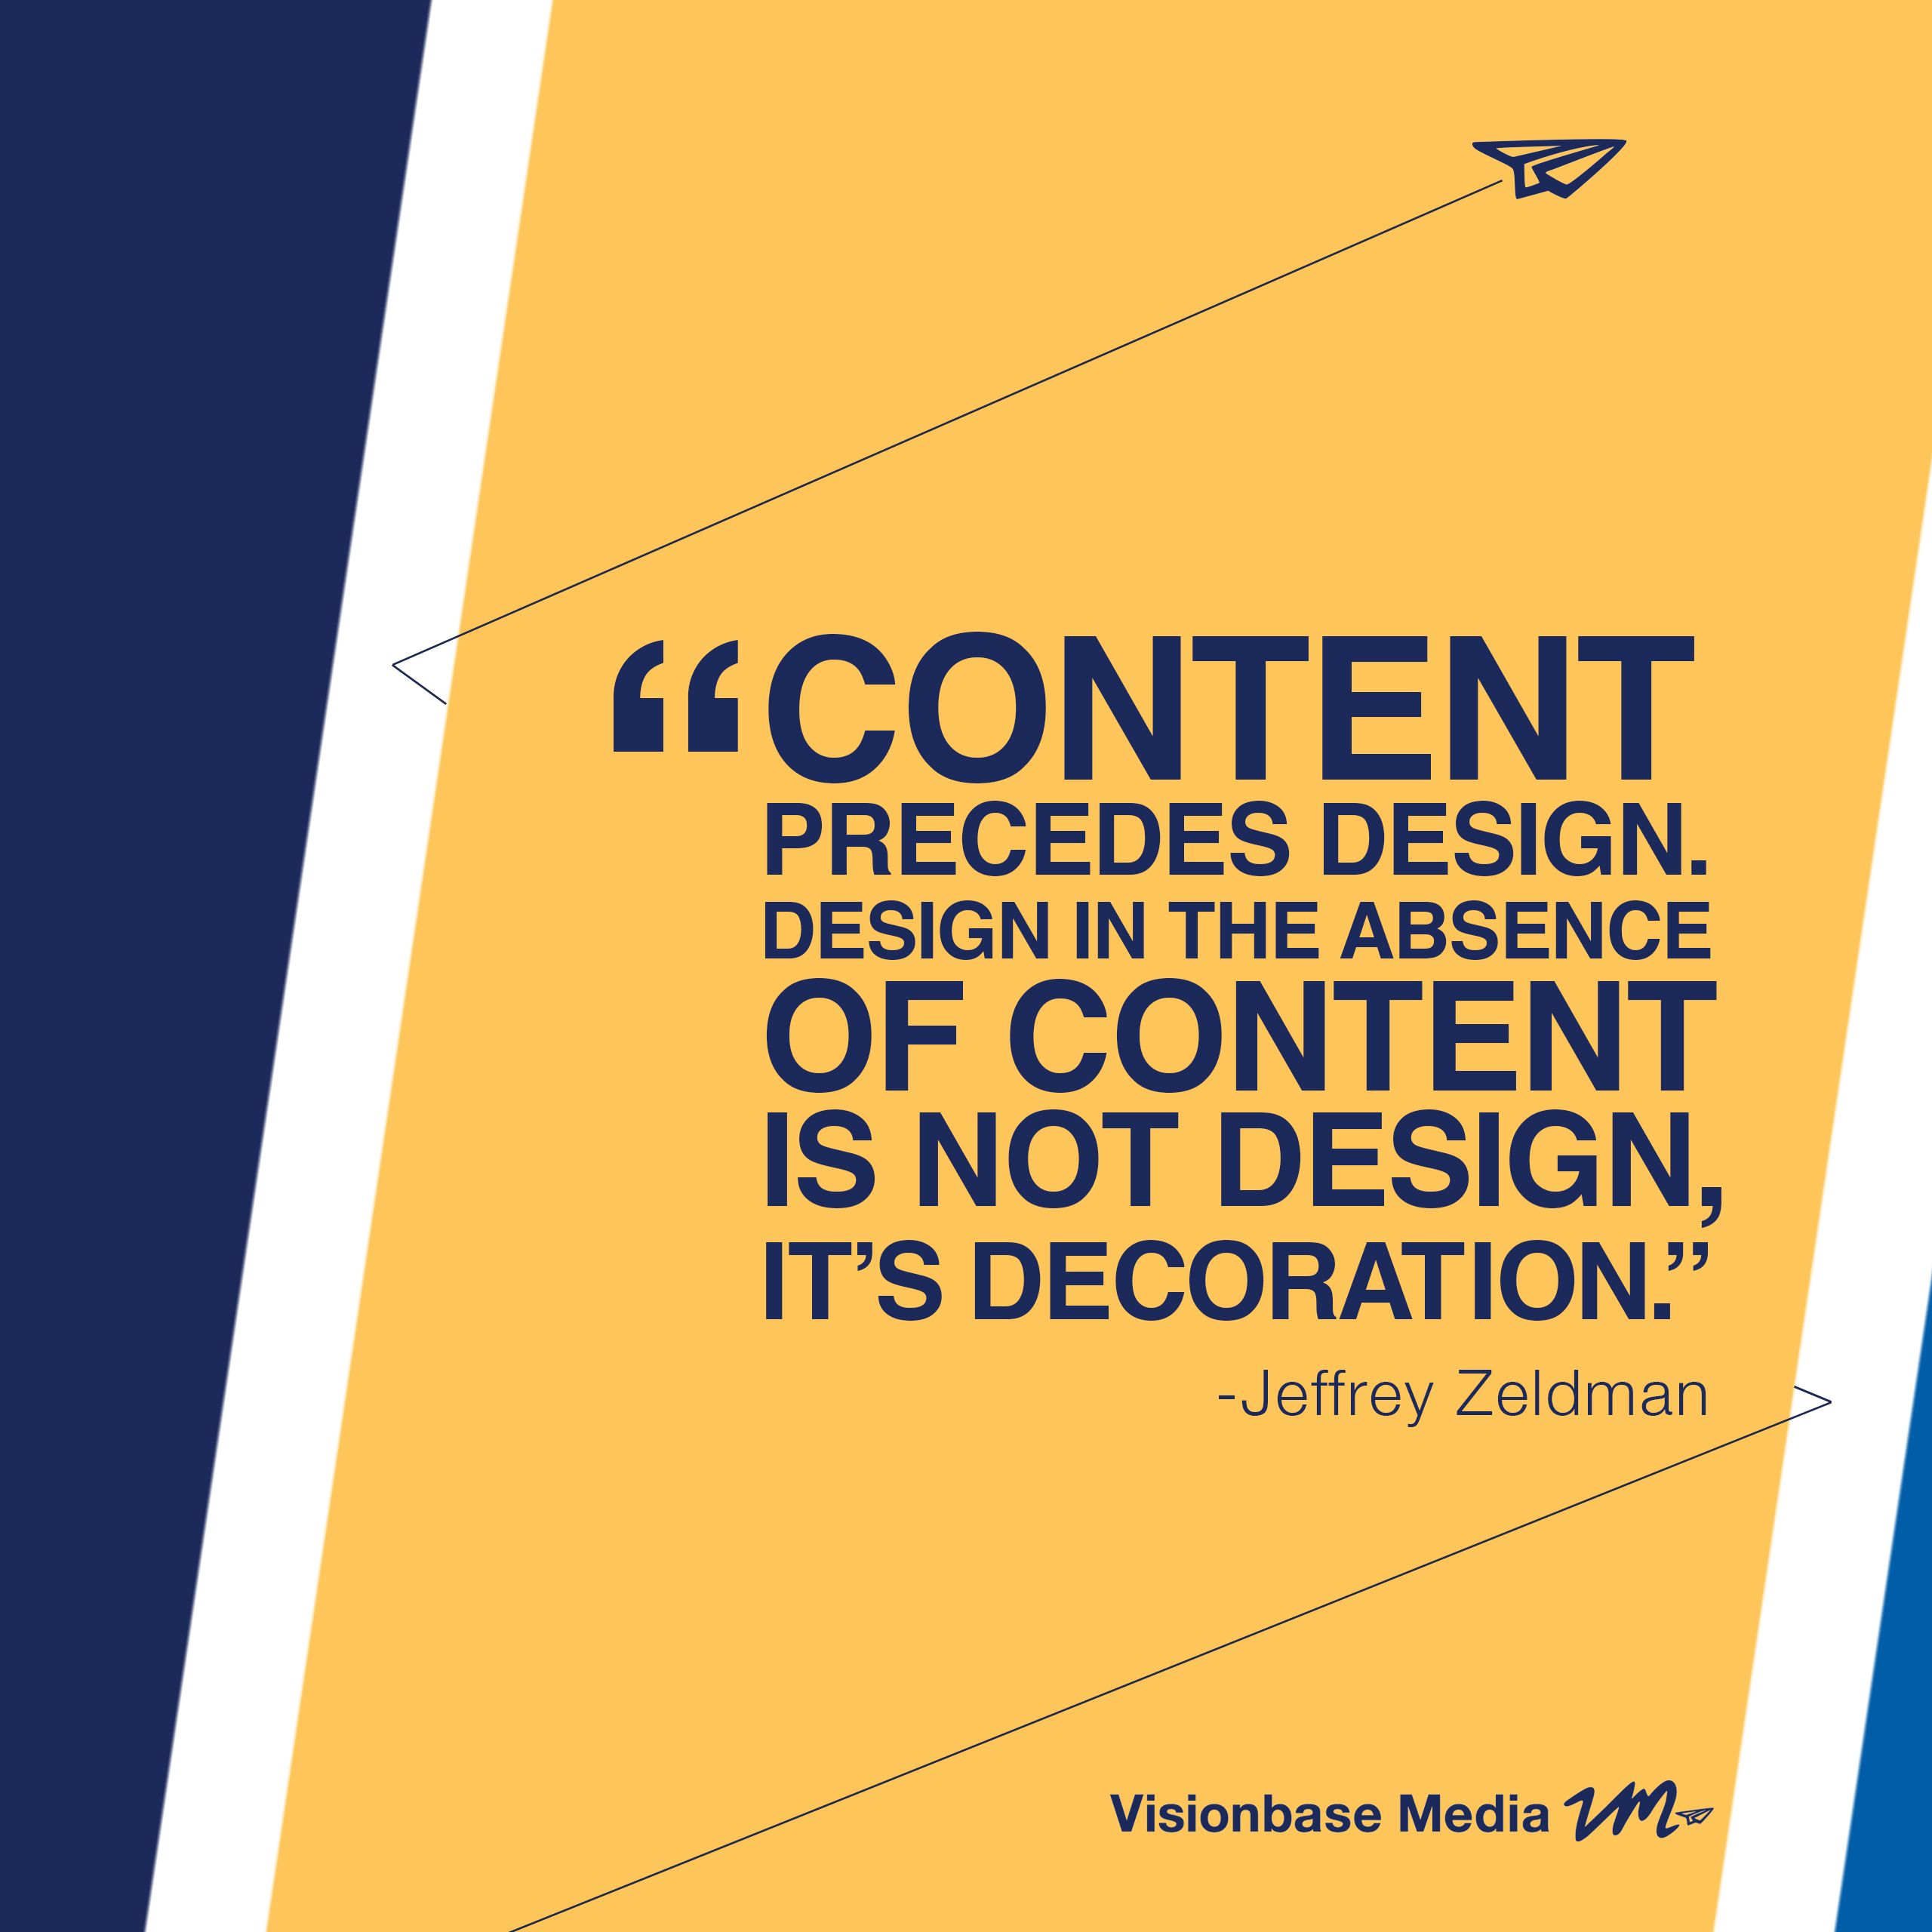 Branding Quotes Pinvisionbase Media On Good Brand Quotes  Pinterest